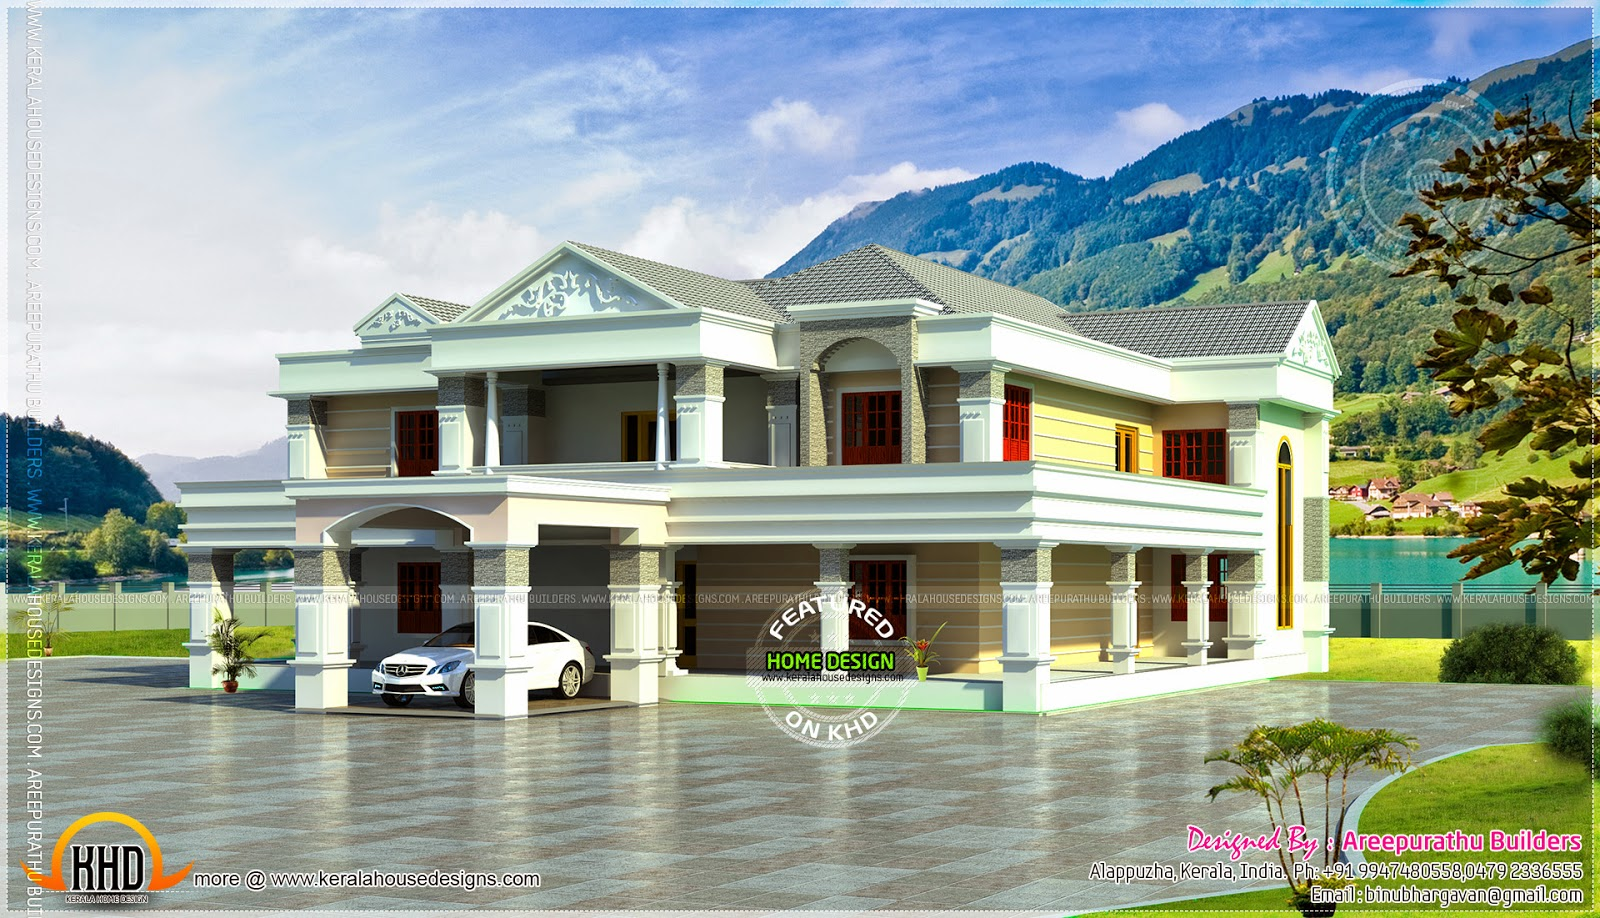 6 bhk super luxury home elevation kerala home design and floor plans - Luxury home designs plans ...